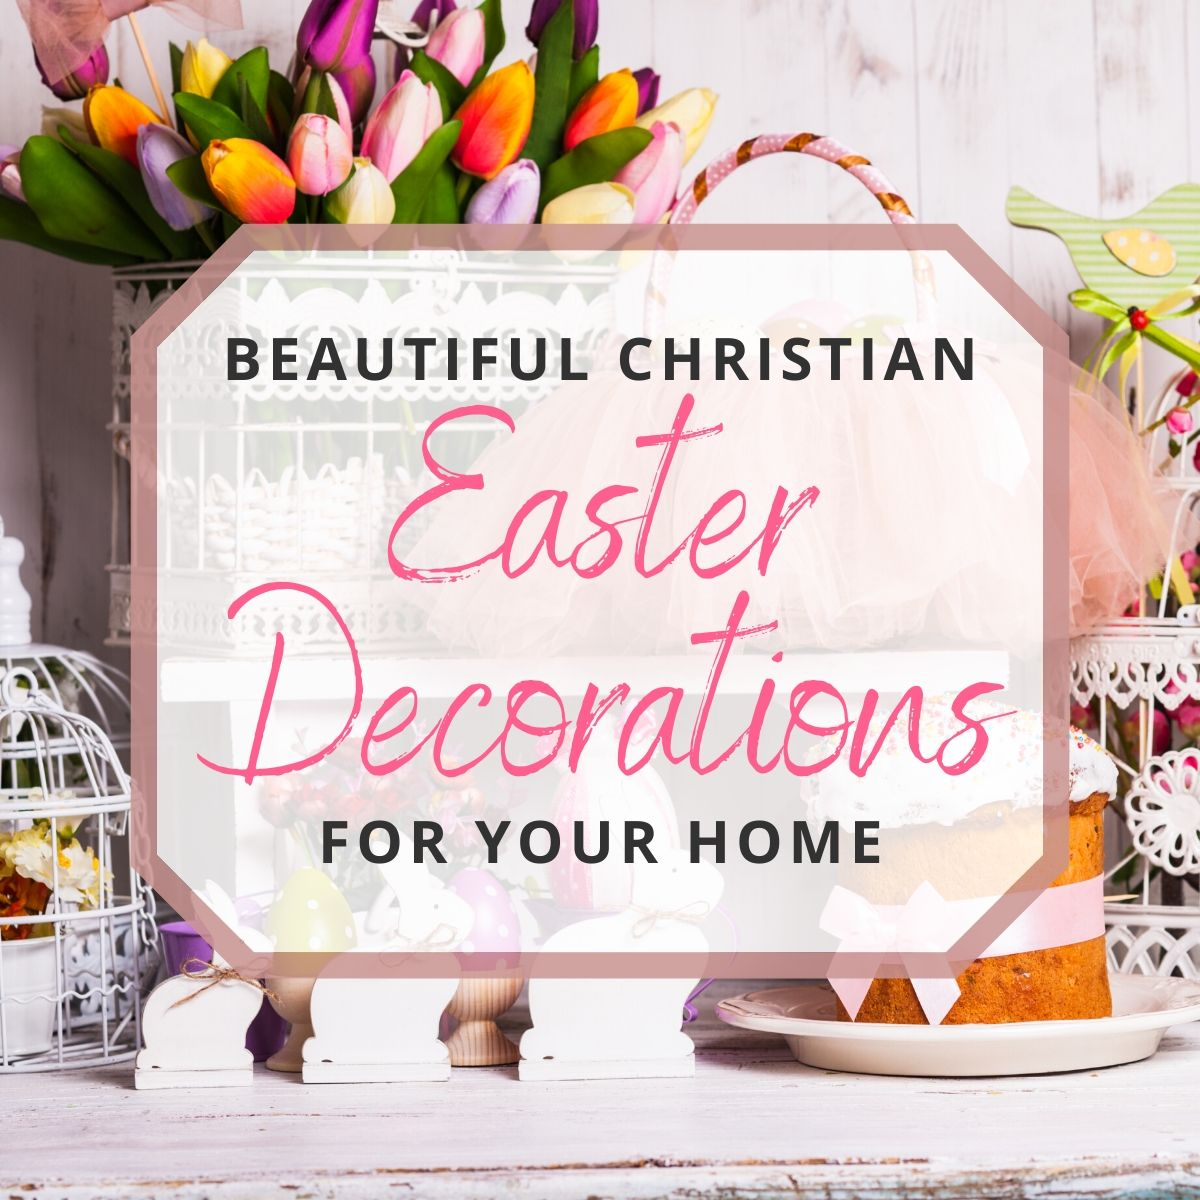 Beautiful Christian Easter Decorations For Your Home